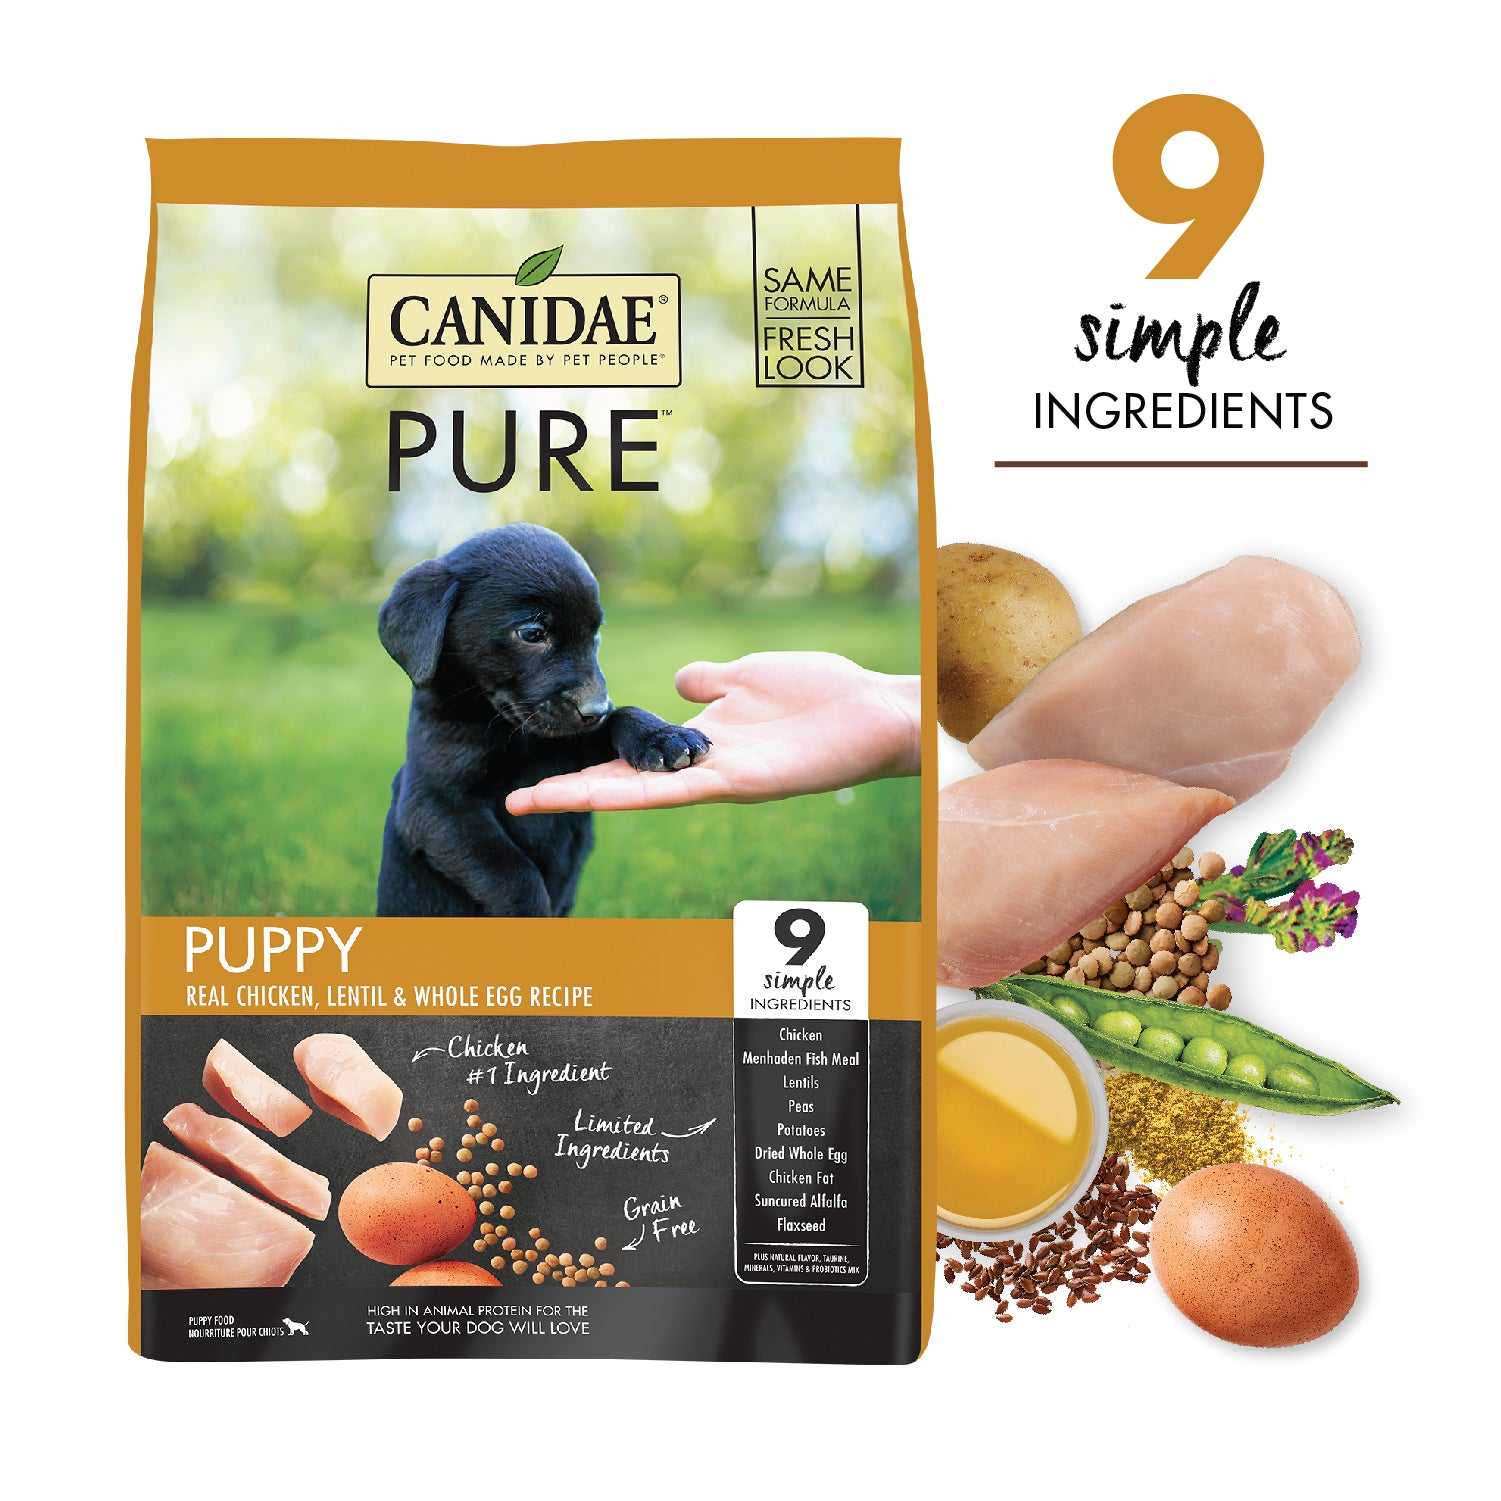 Canidae Grain Free PURE Foundations Puppy Formula Made with Fresh Chicken 12lb